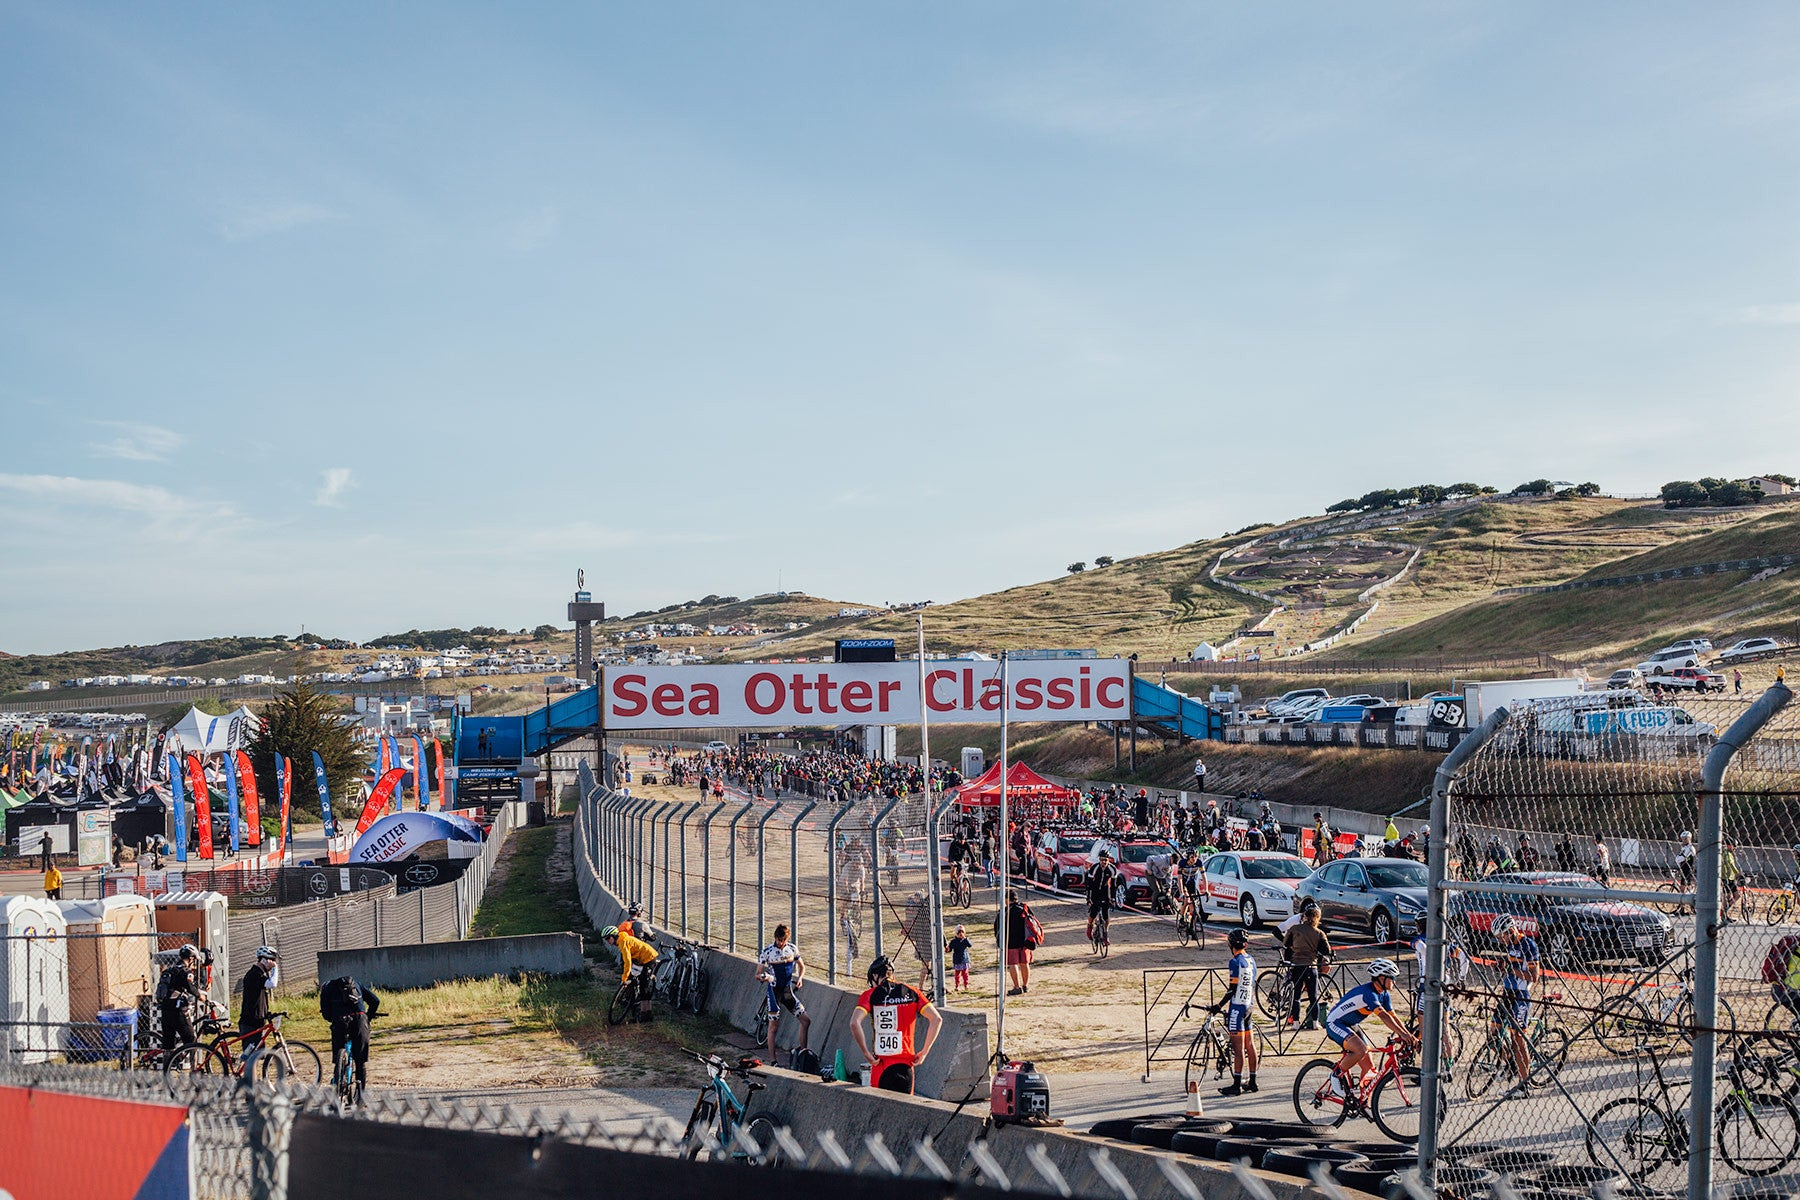 Day 1 of the Sea Otter Classic